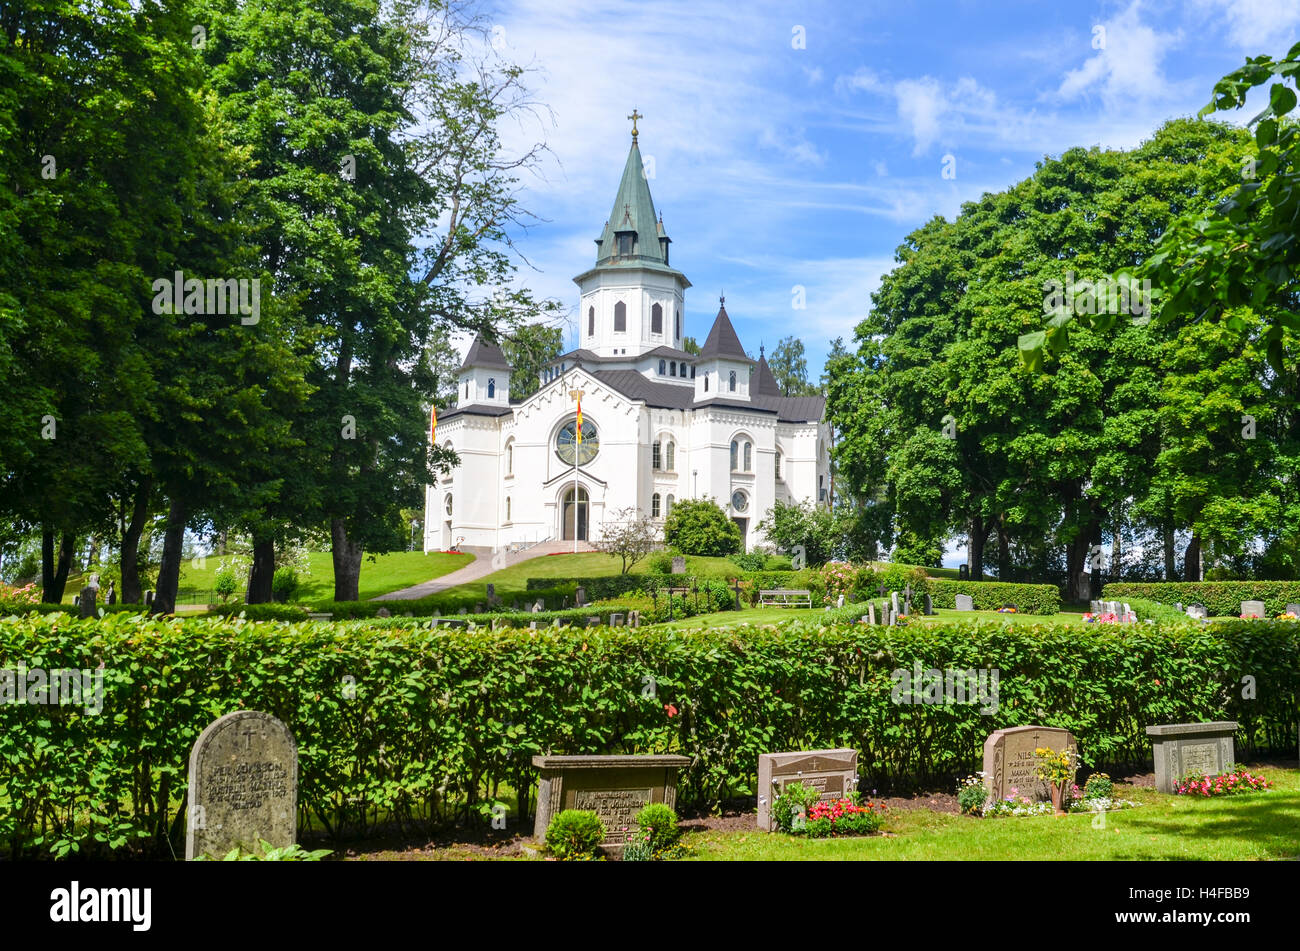 Church and cemetery in Sillerud, Sweden - Stock Image